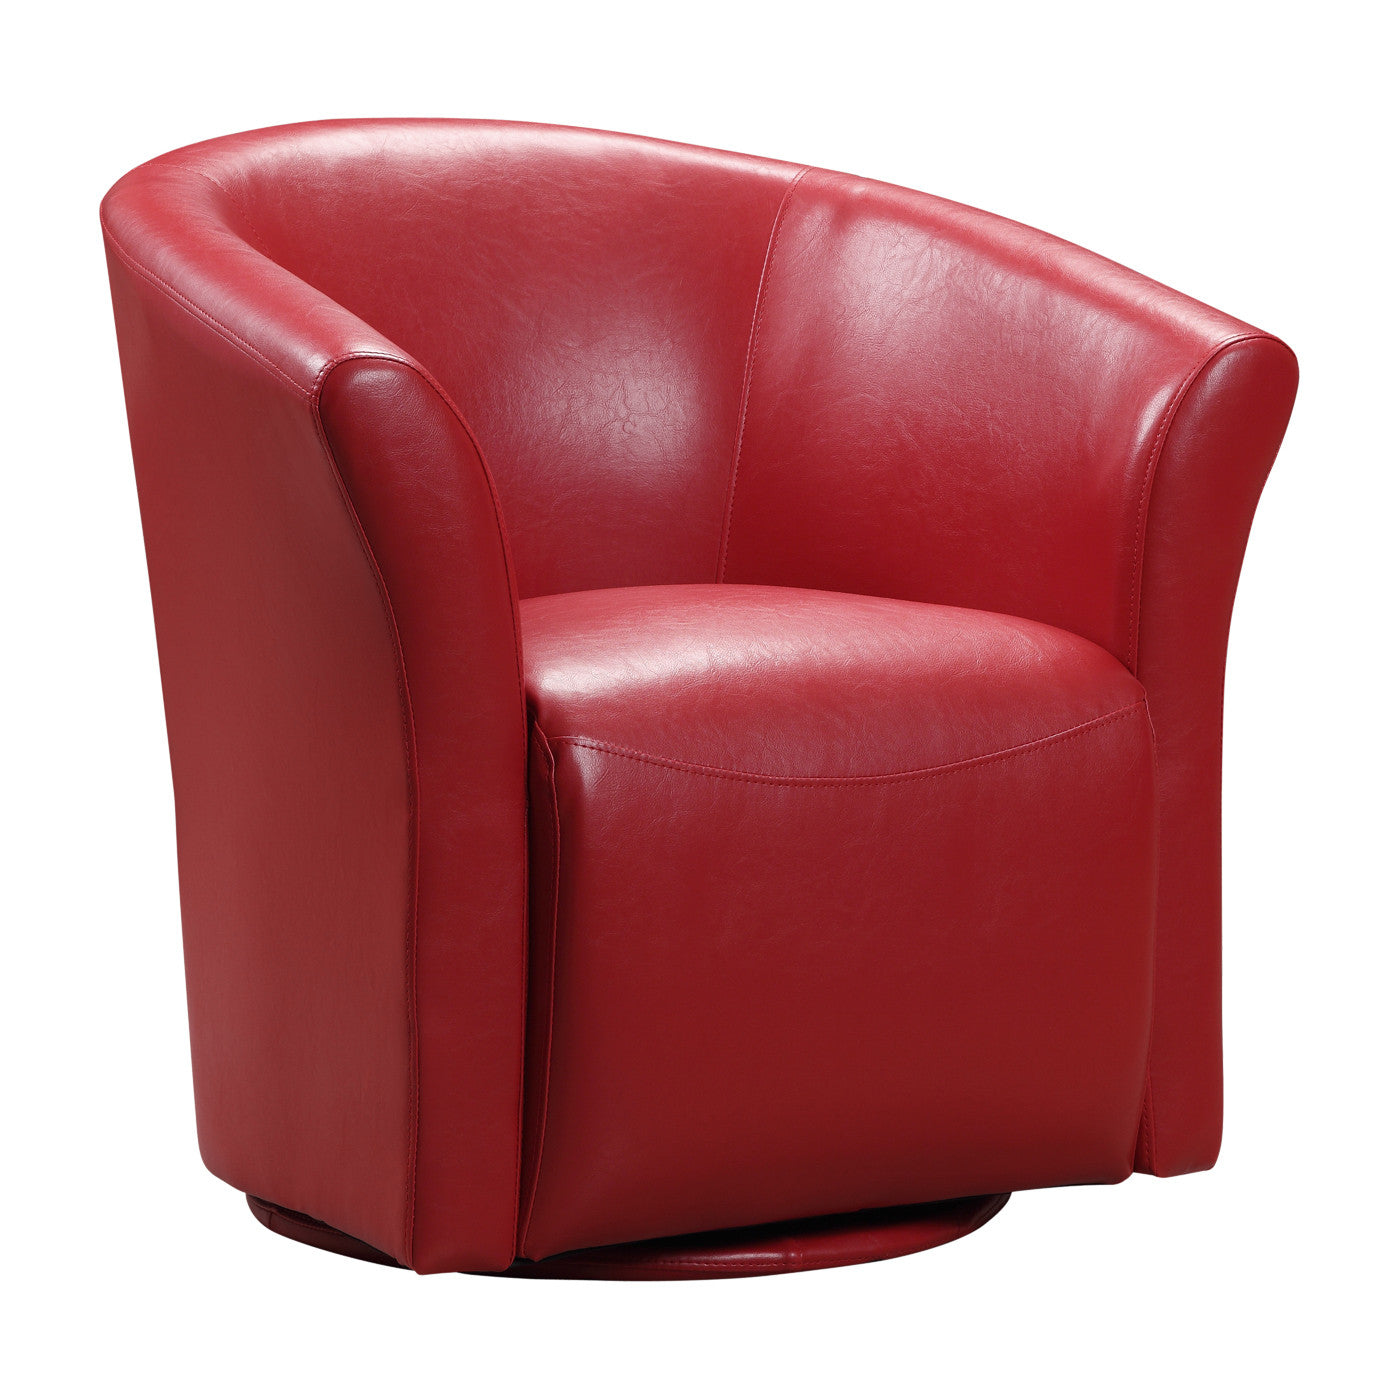 swivel accent chair. Murphy Swivel Accent Chair - RED Apt2B. Will It Fit? R